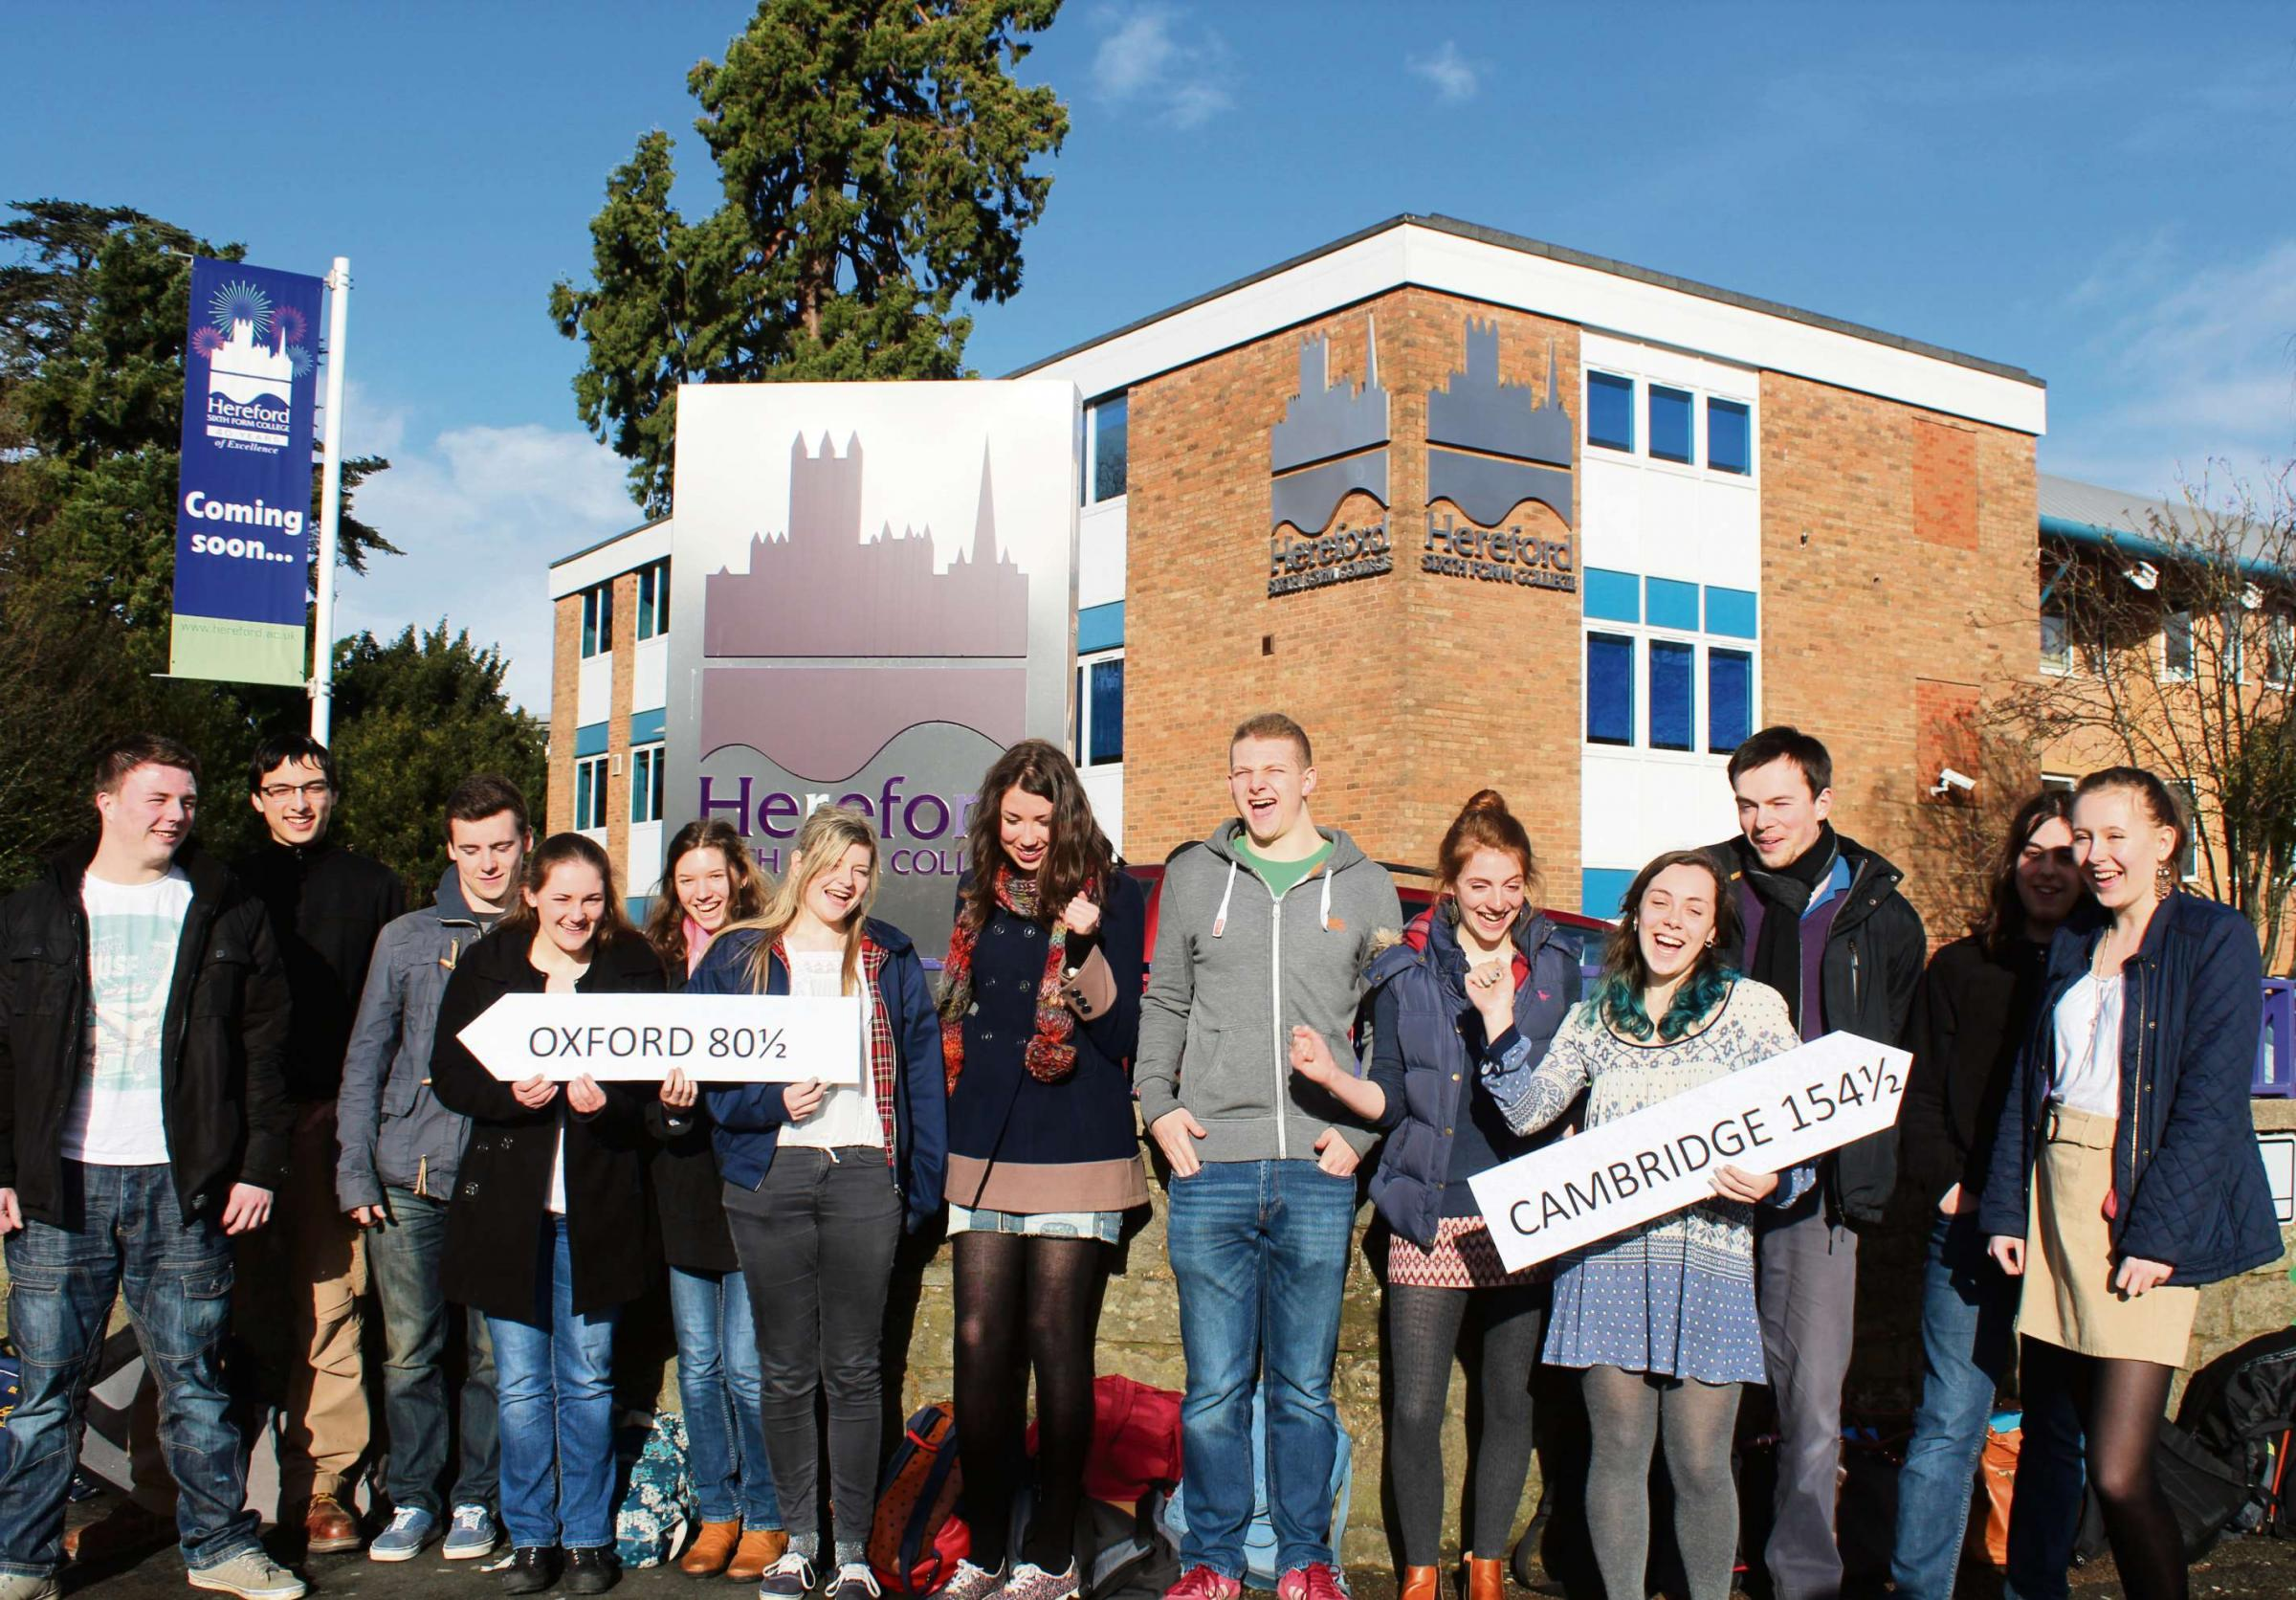 The successful students - with the exception of Daniel Gethin who was in New York at the time of the photo.